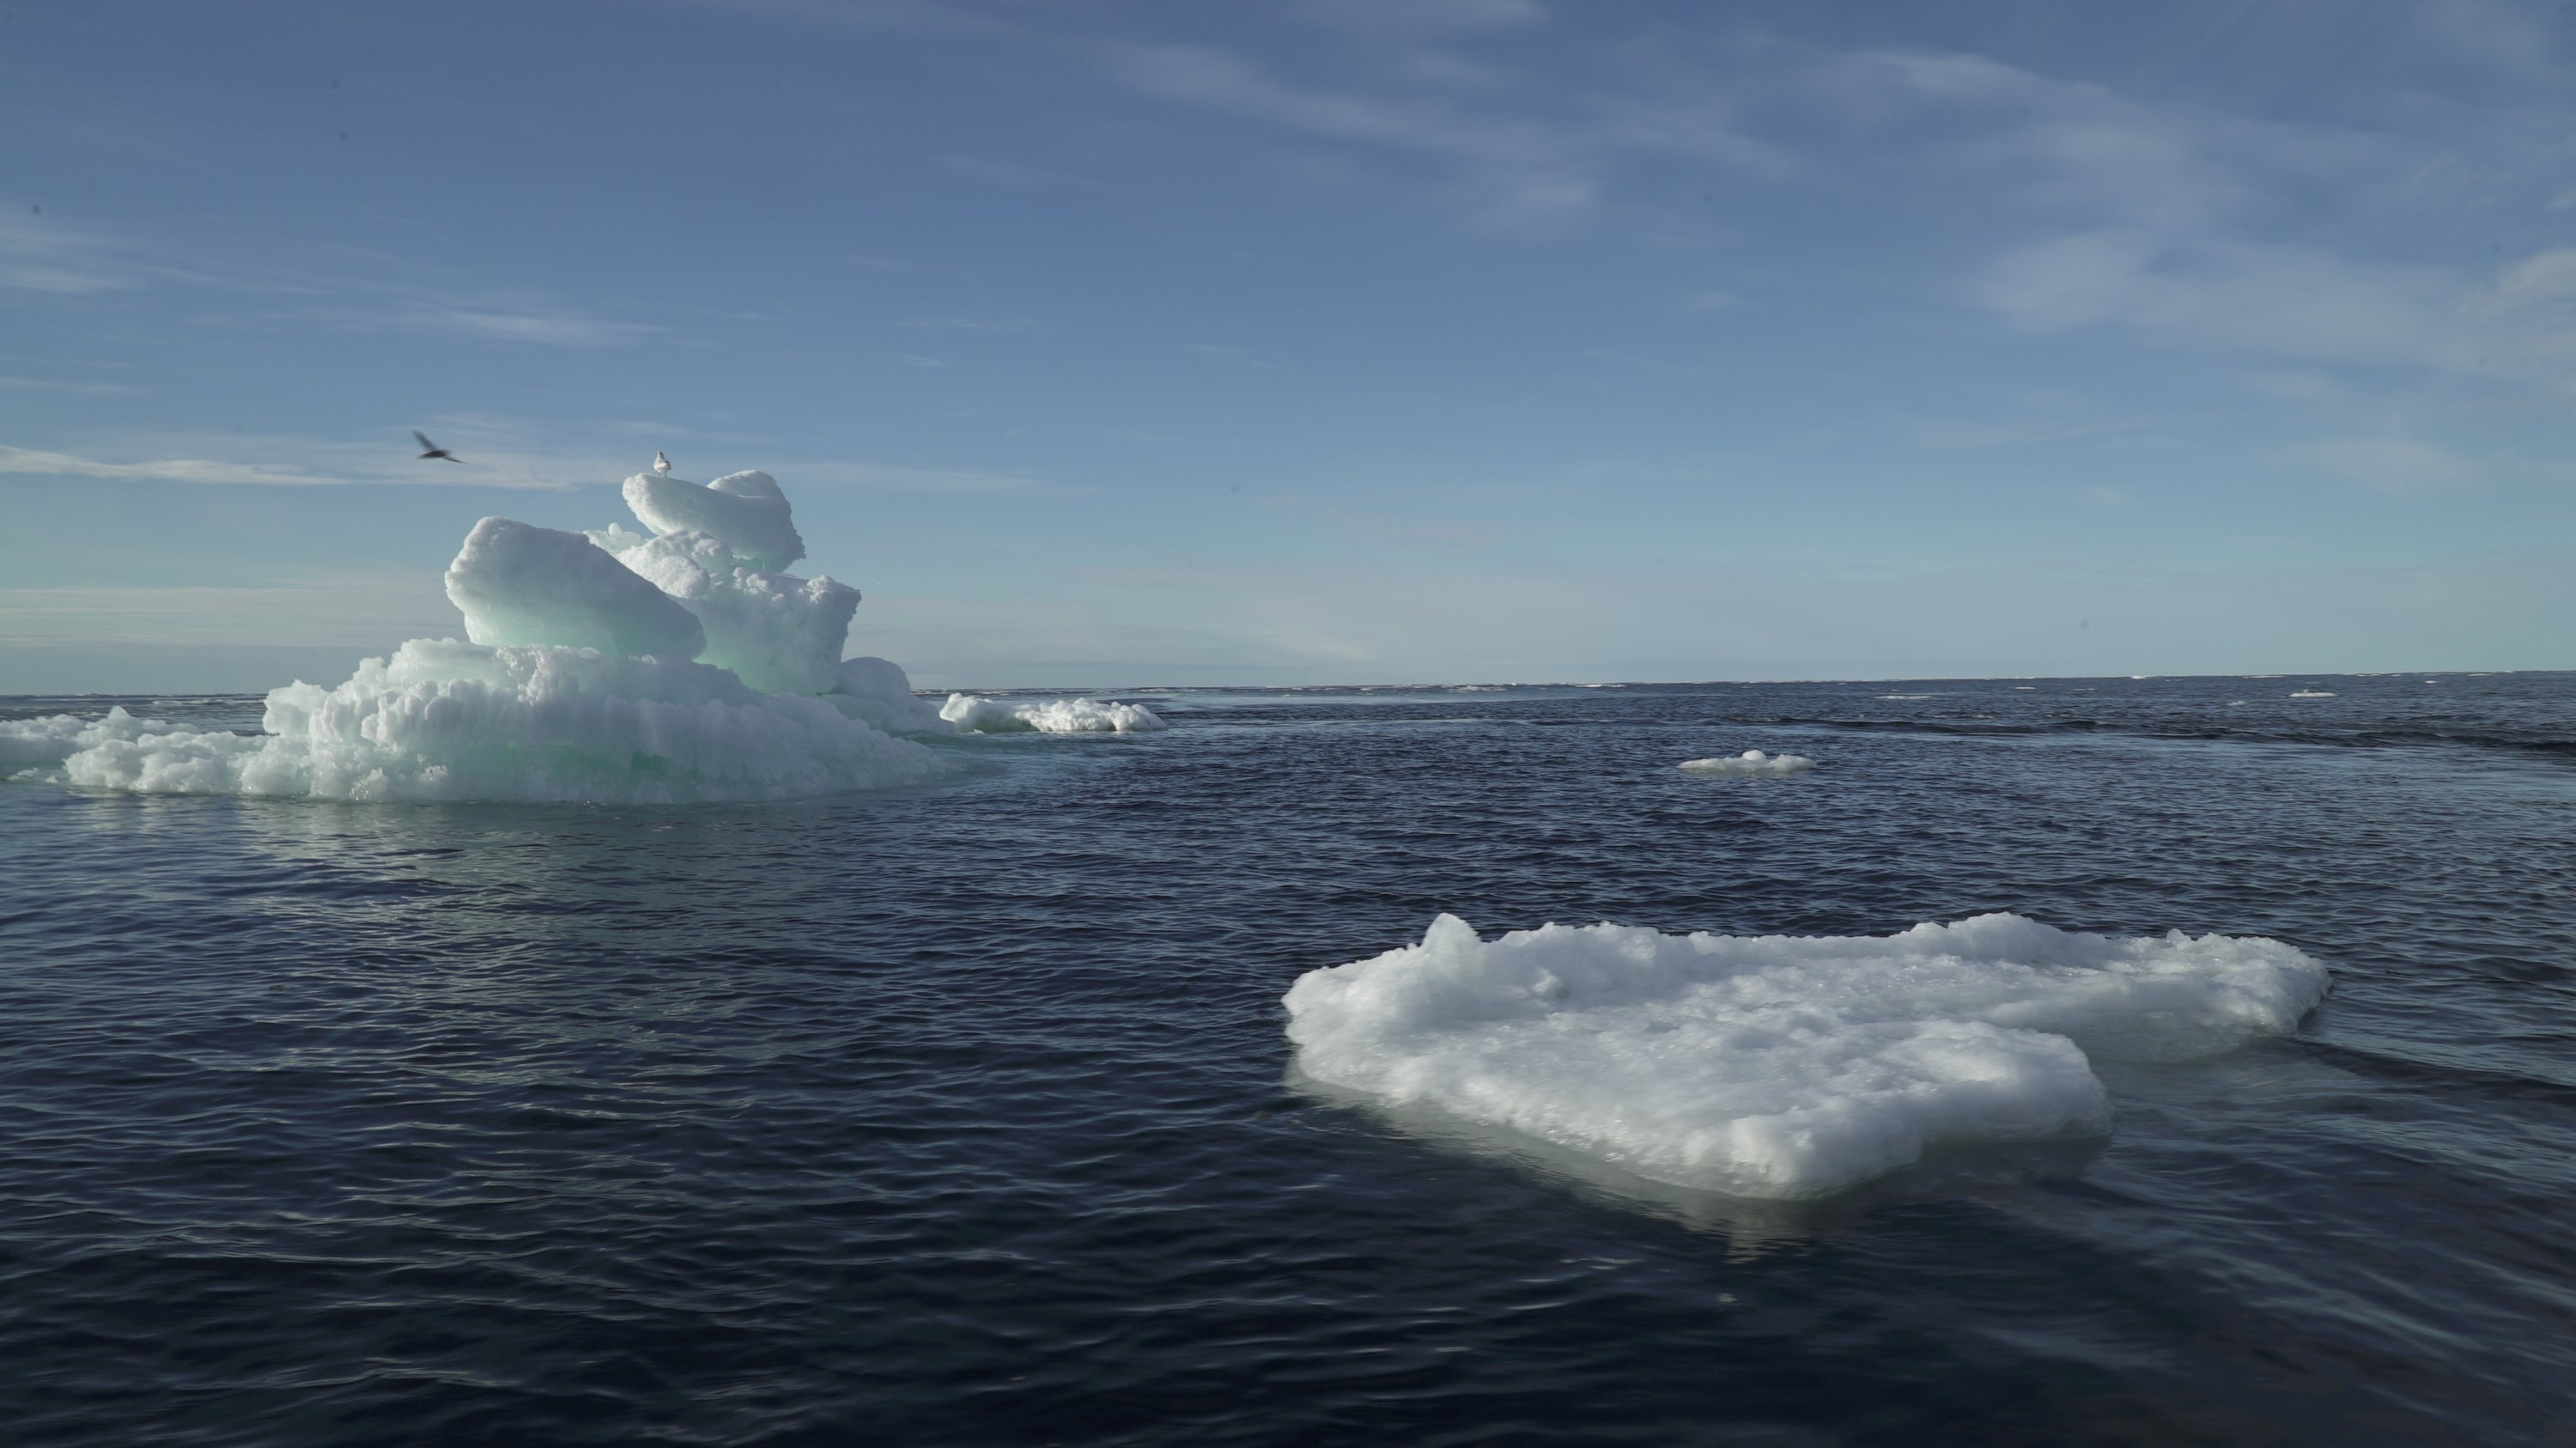 Floating ice is seen during the expedition of Greenpeace's Arctic Sunrise ship at the Arctic Ocean, September 14, 2020. (REUTERS Photo)